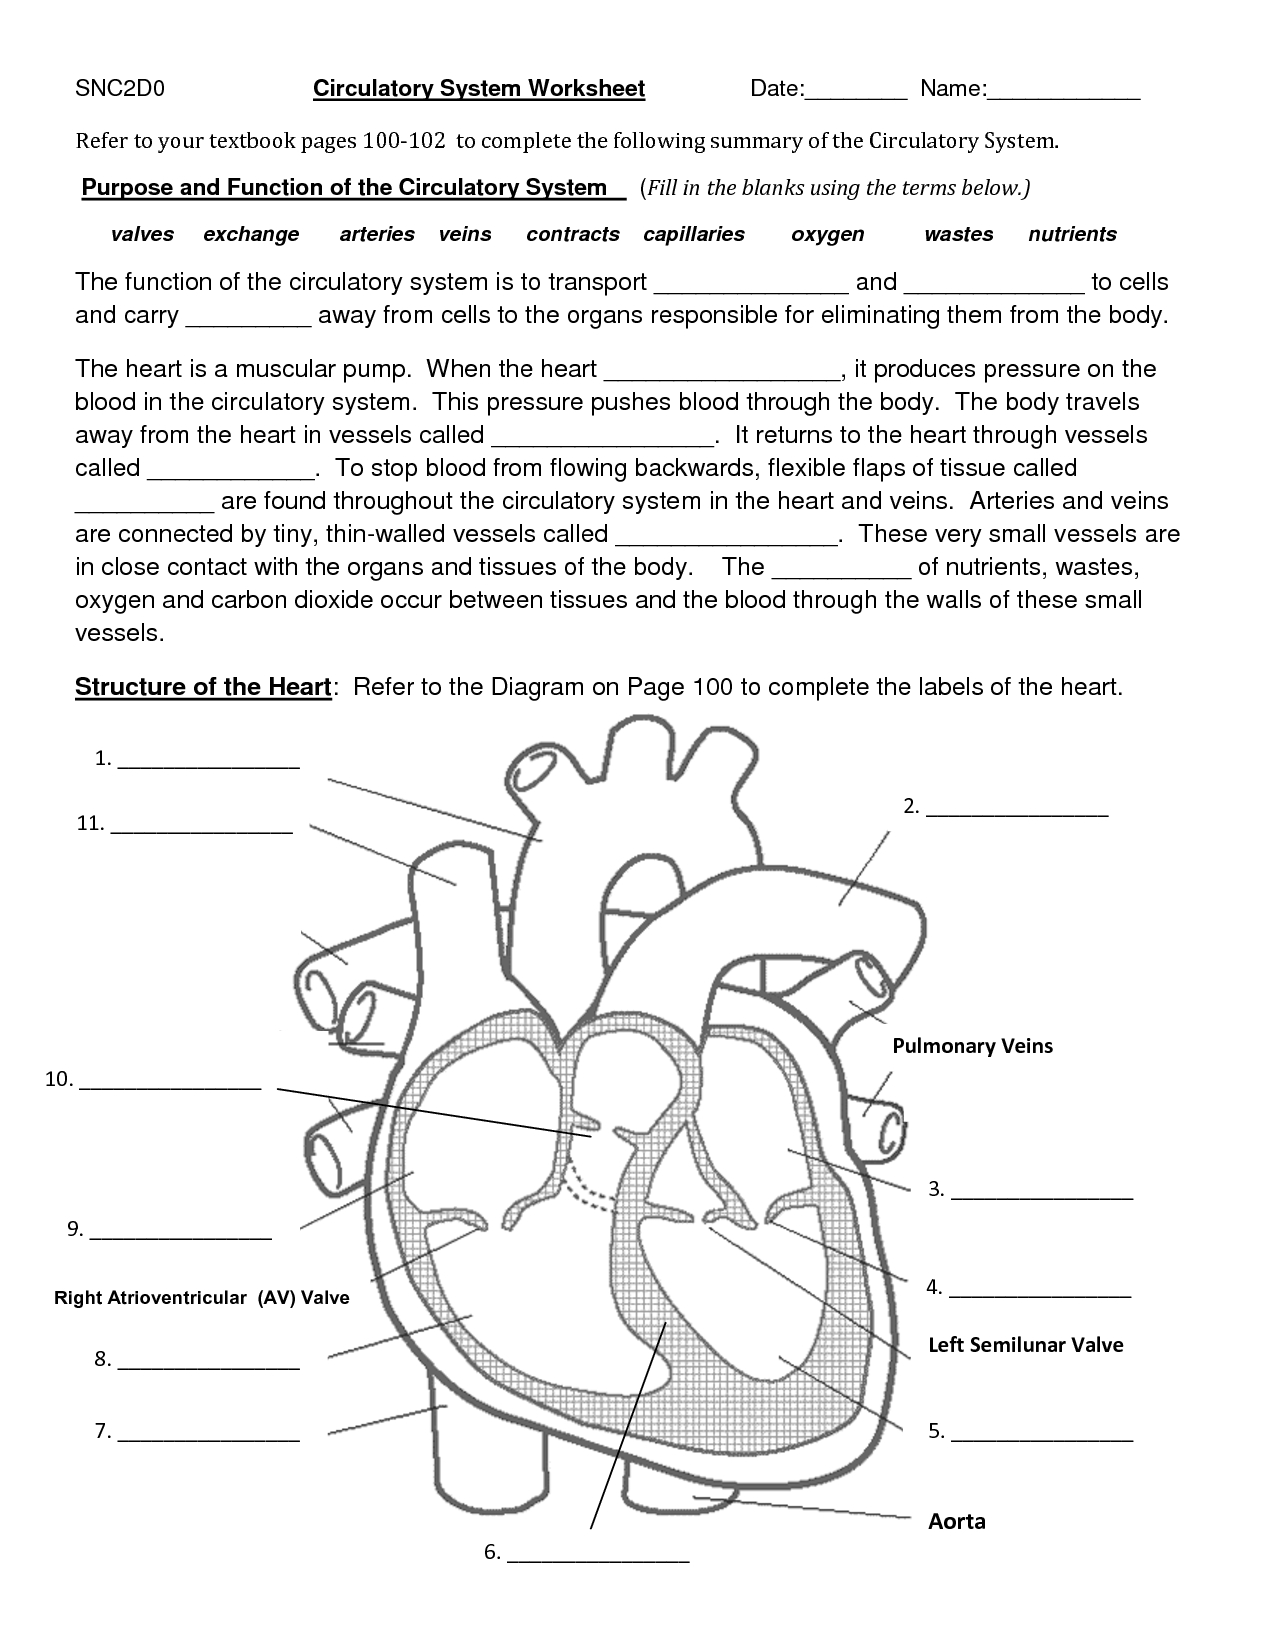 Circulatory System Coloring Pages - Circulatory System Diagram Worksheet